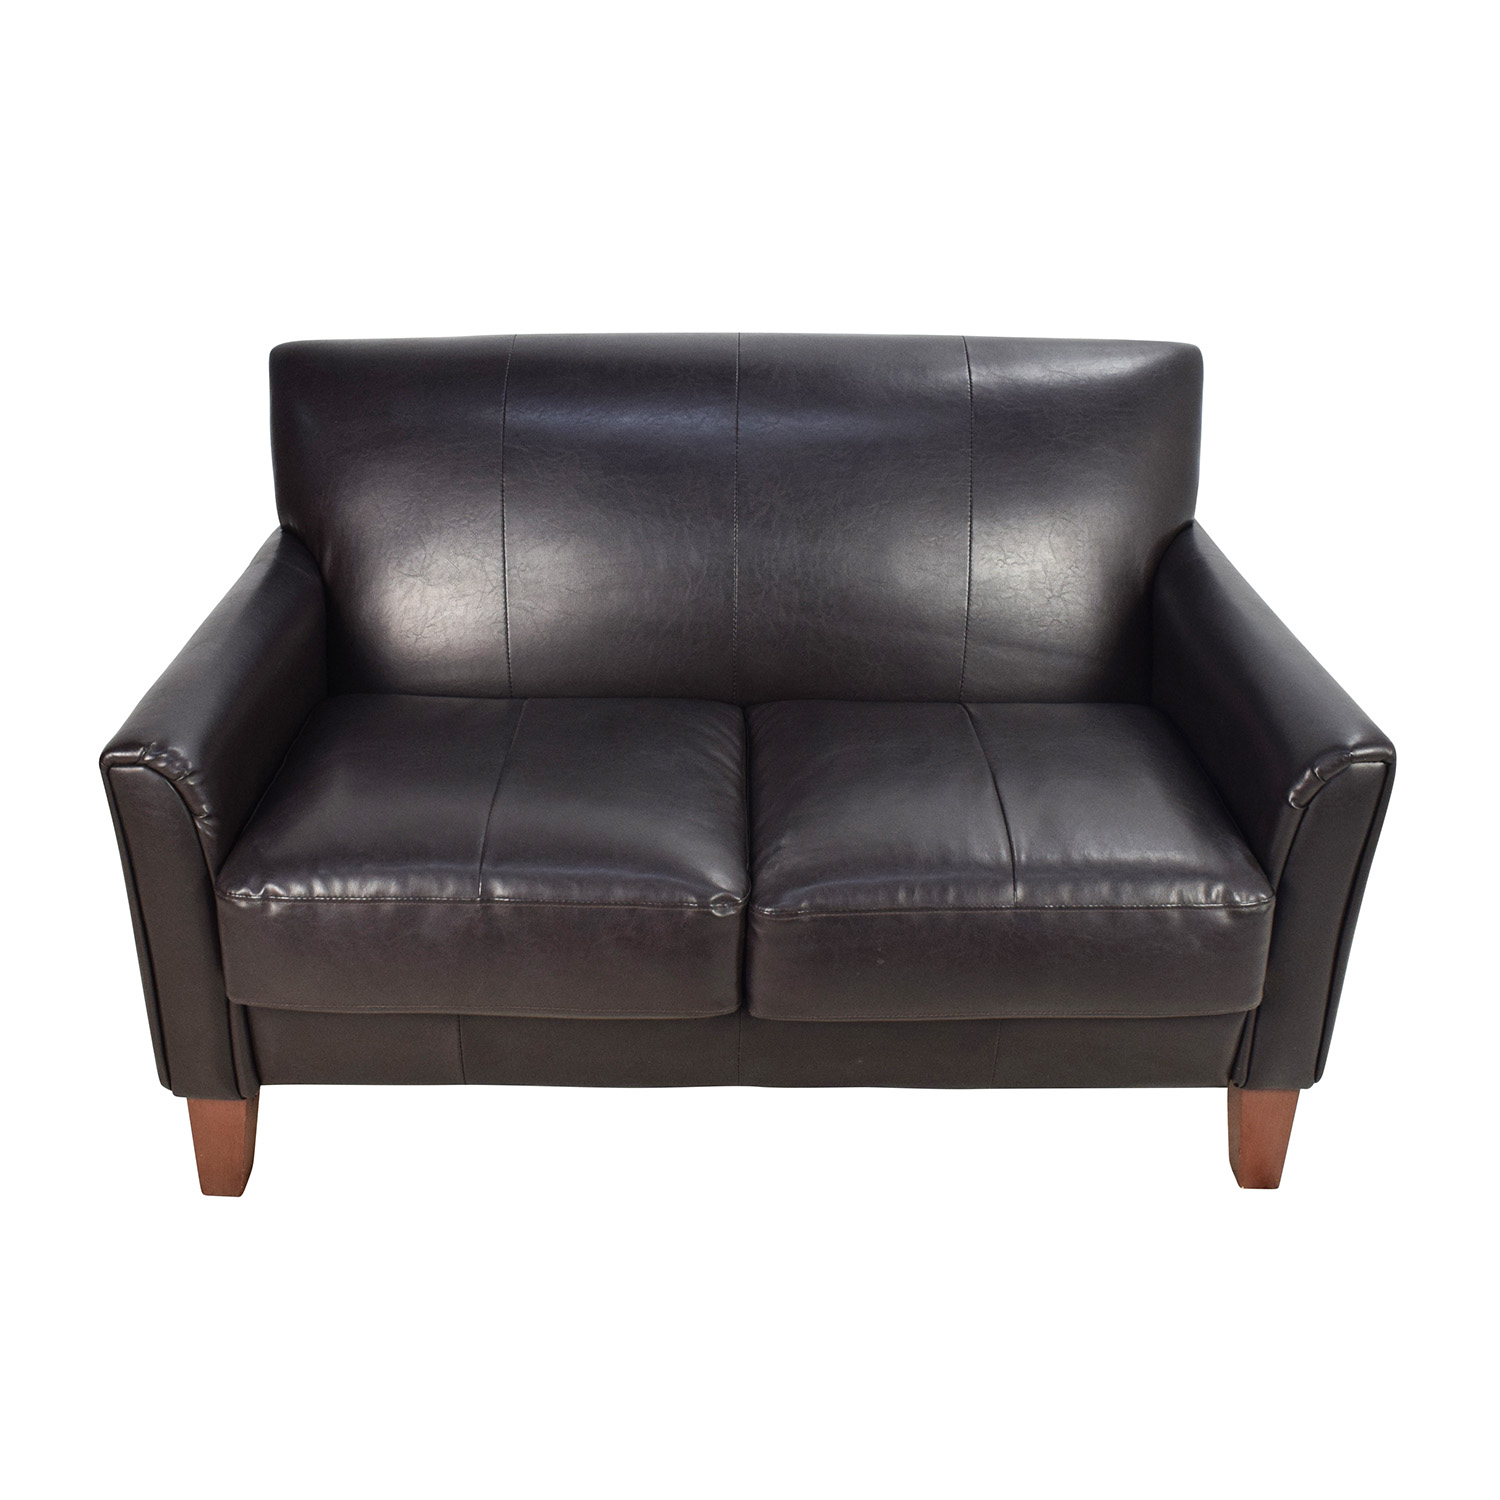 leather sofa furniture stores nyc gray with jute rug 53 off black loveseat sofas